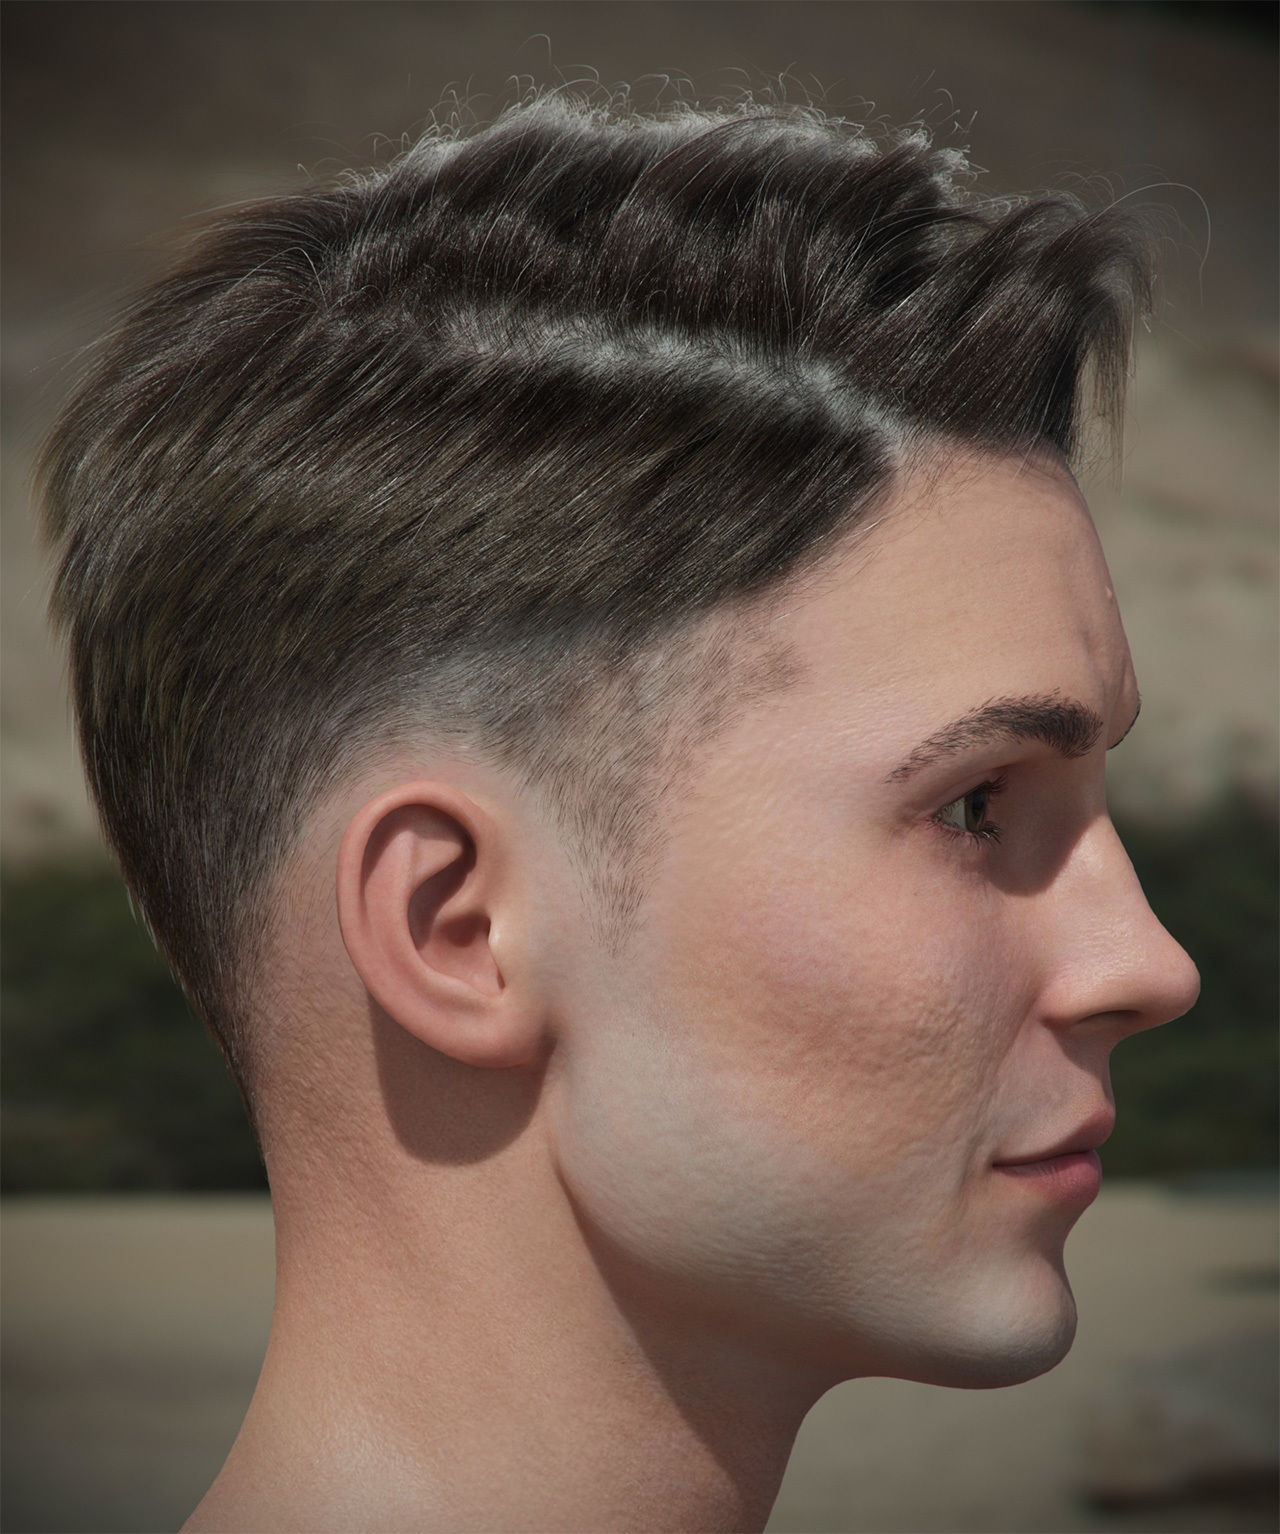 Hair style with changes request